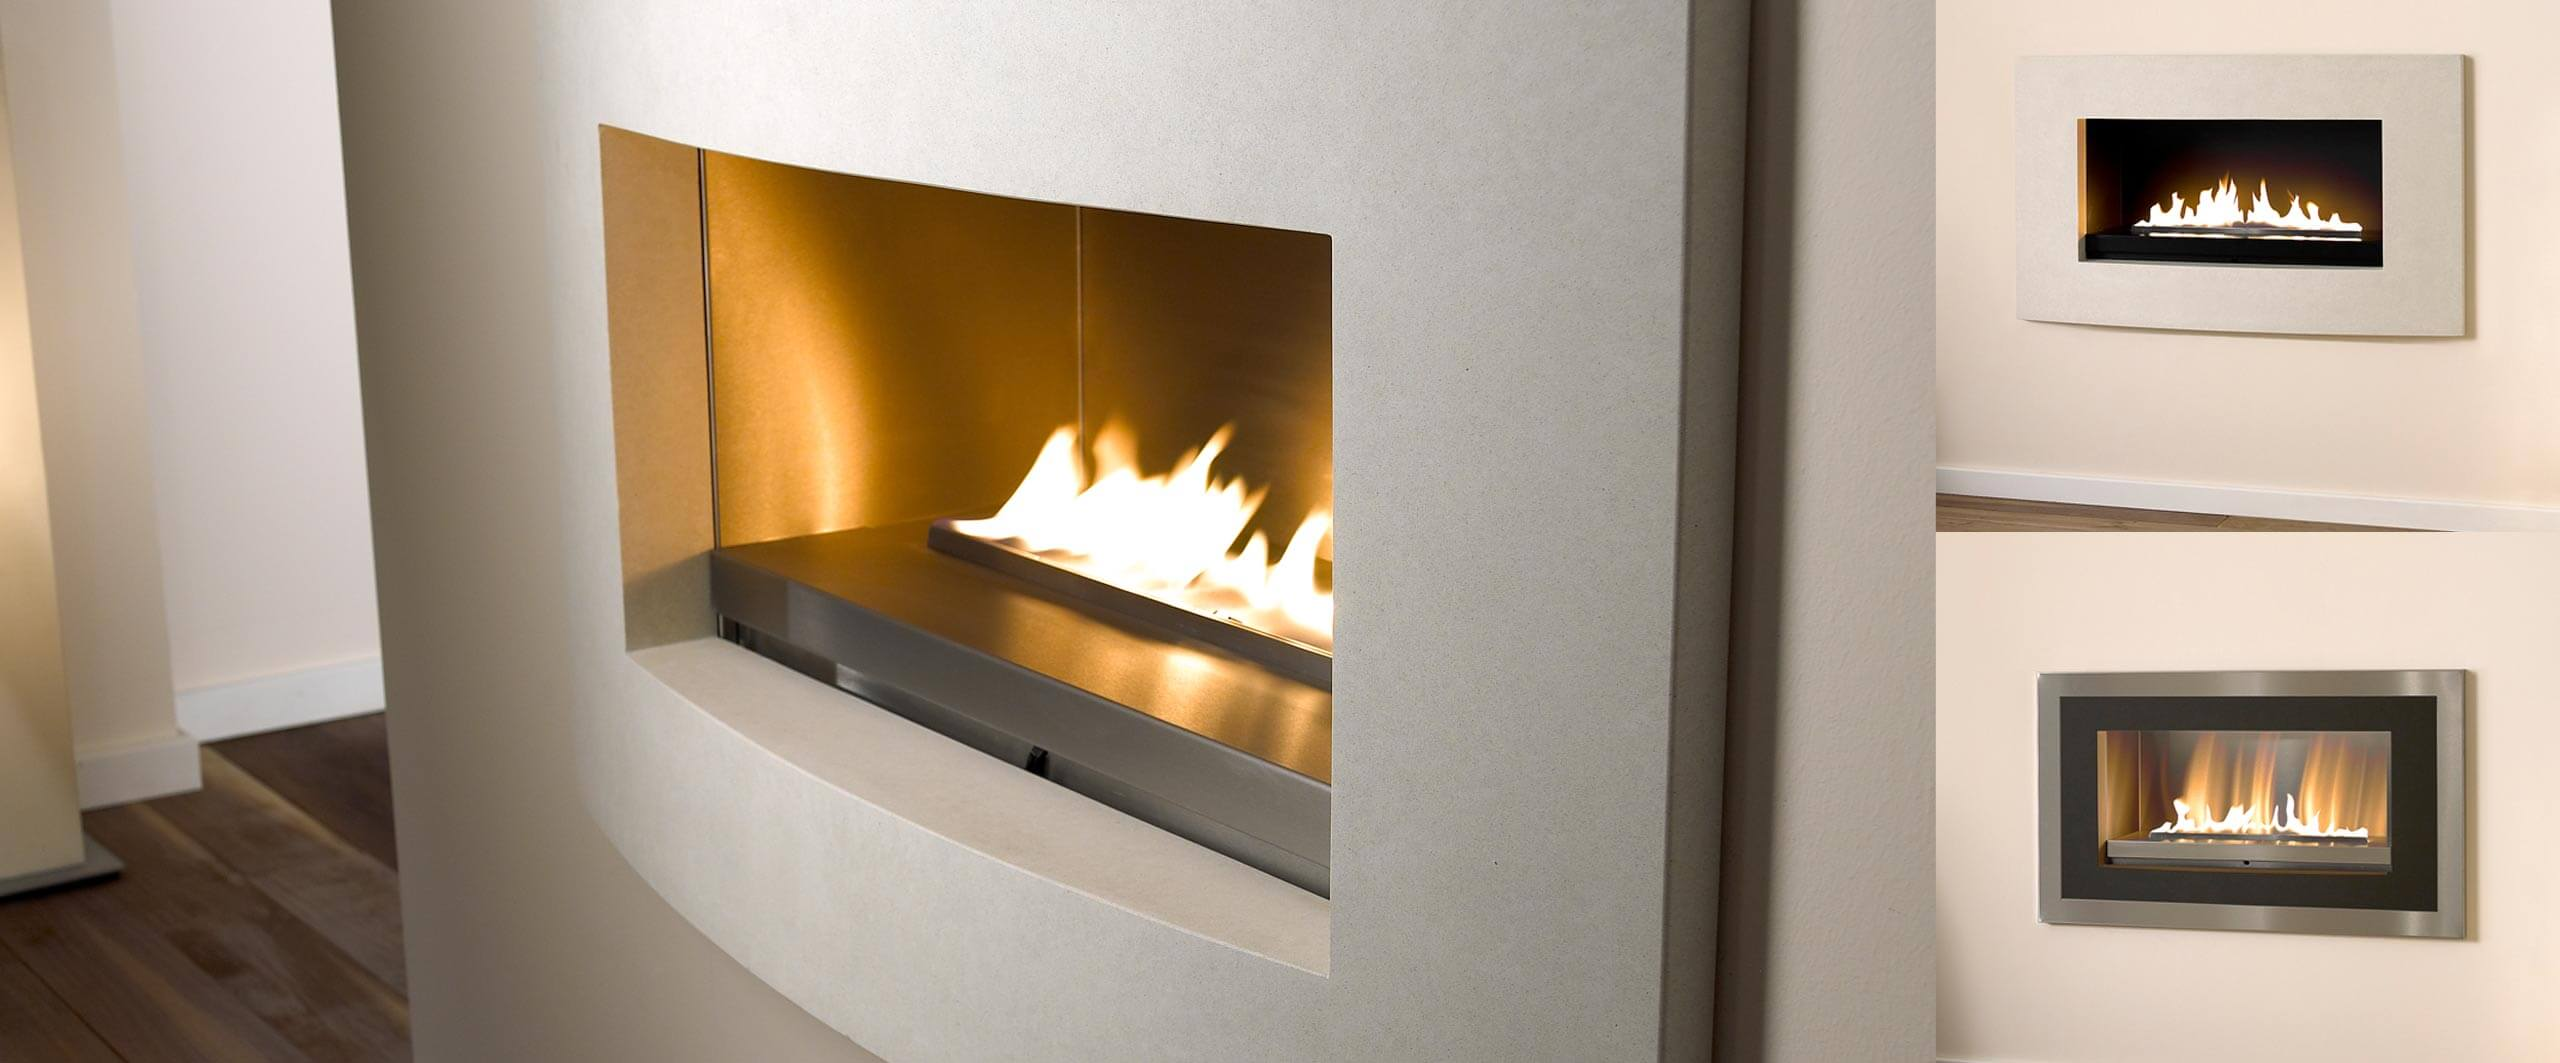 Smartscape Fireplaces Hole In The Wall Fireplace